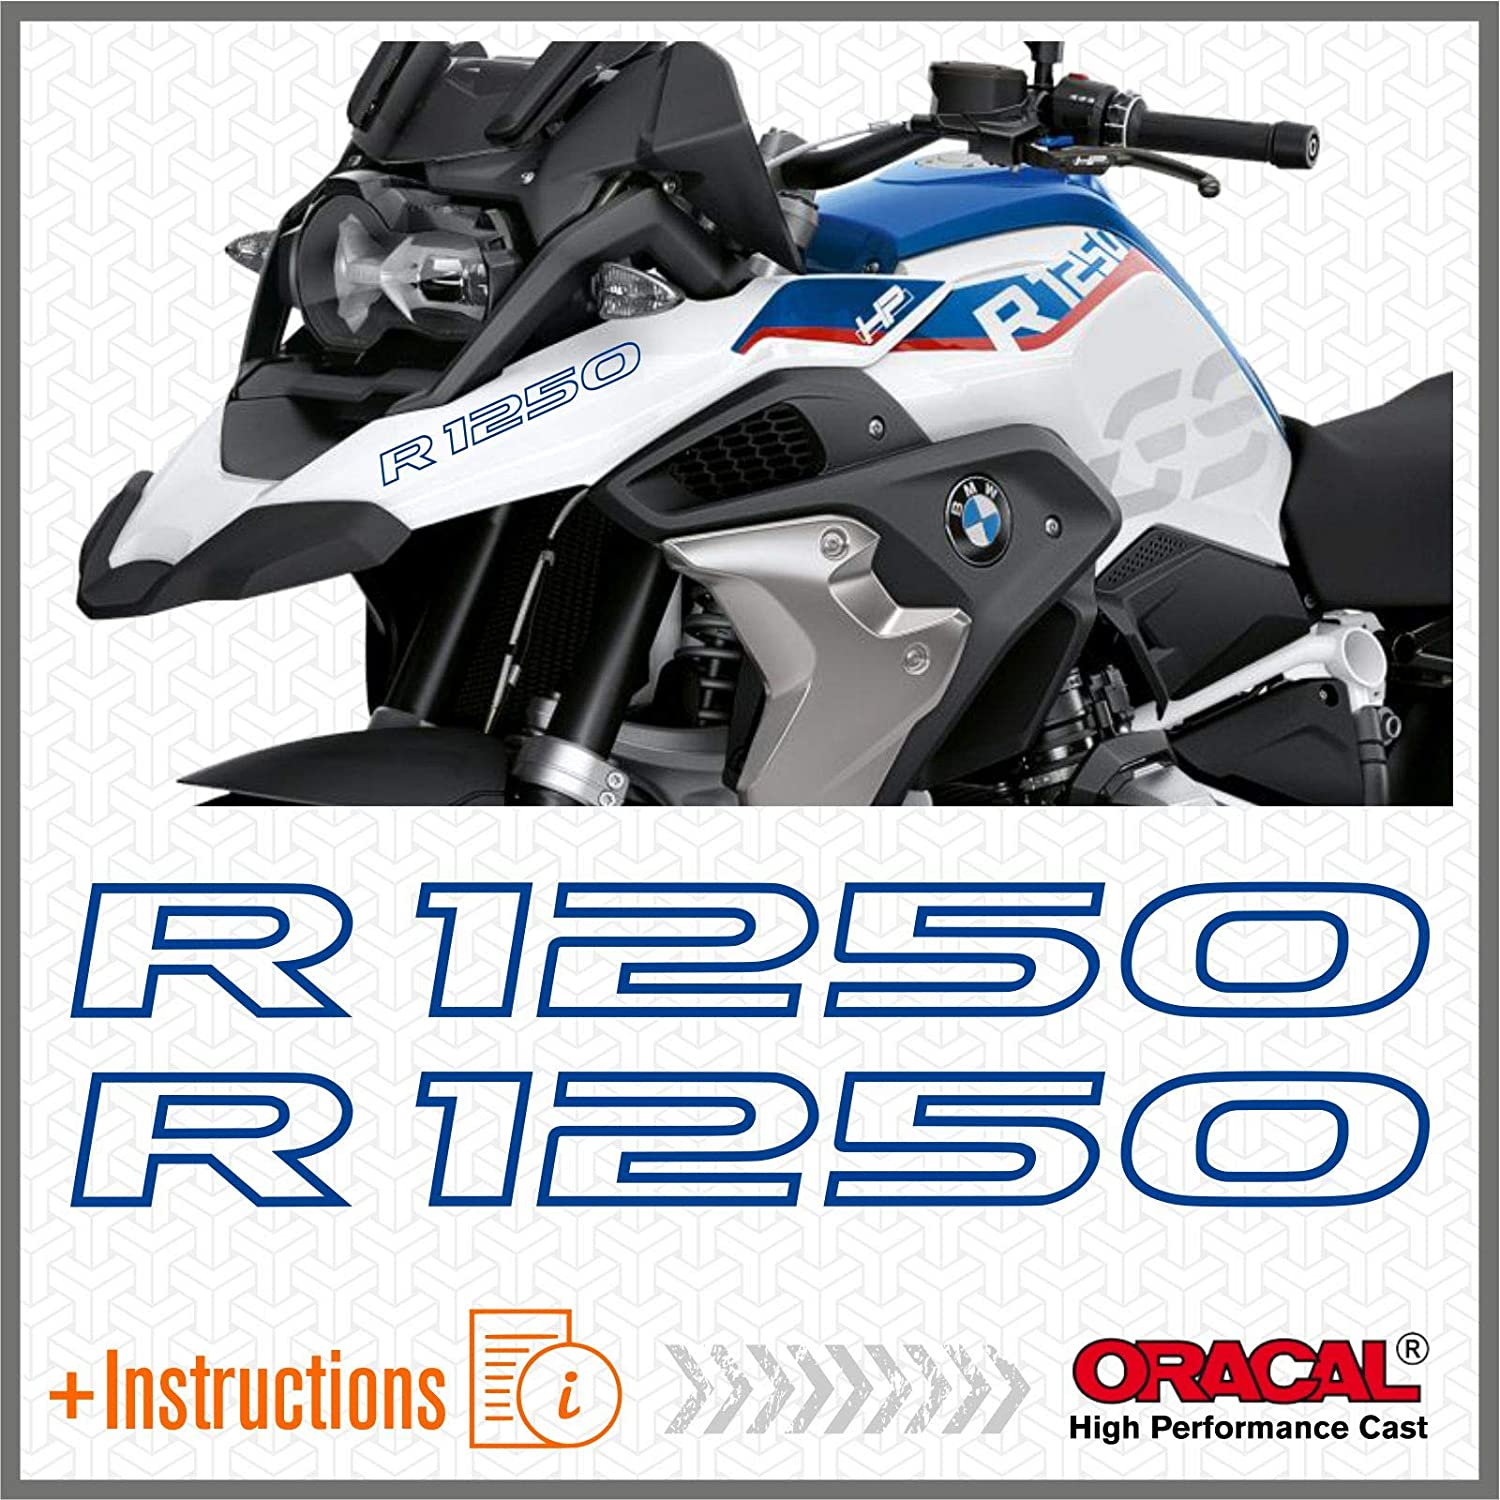 Light Blue 2pcs adh/ésif R1250GS Adventure Compatible avec Les Motos BMW Motorrad R1250 GS R 1250 HP Touratech y GIVI Trekker Outback 37L 48L